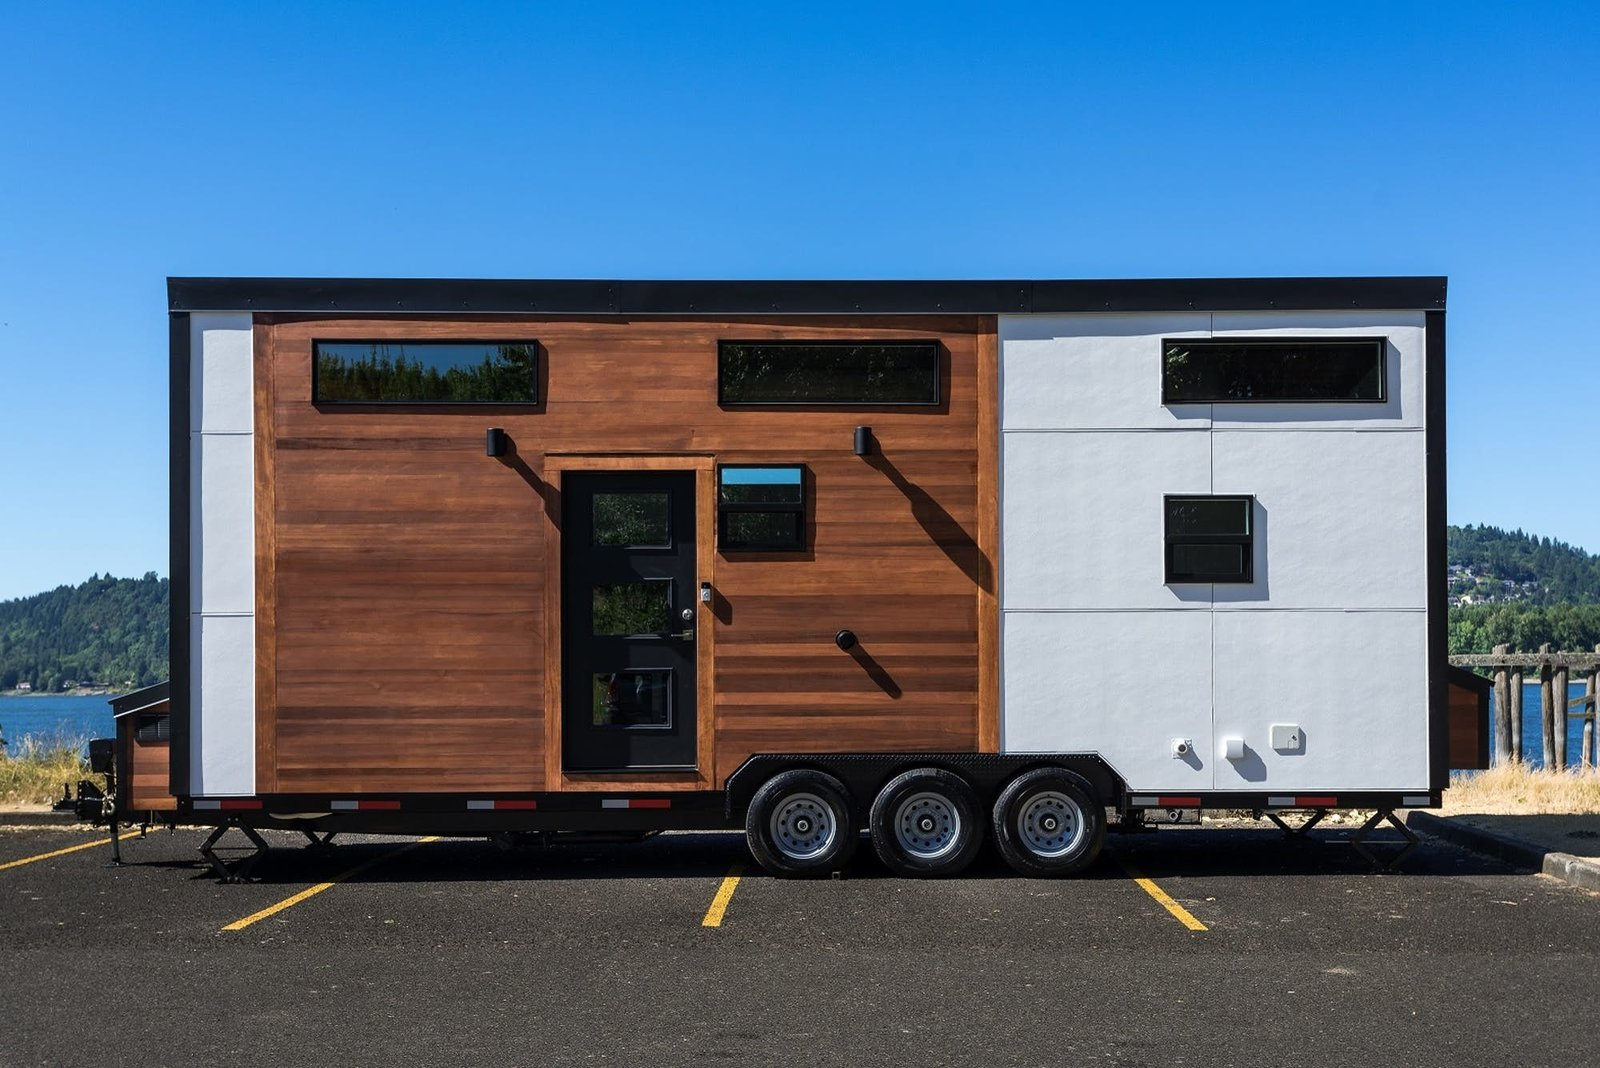 The Oregon-based tiny home builder's flagship model, the Catalina, has a bright airy feel and offers which has a sleek look cool modern interiors.The home comes in three sizes—24, 28, or 32 feet—and features exterior details such as cedar accent siding and black metal framing. The home has two lofts, one for storage and one for sleeping, ample living space, a bathroom with a full shower, bathtub and toilet, and an optional solar setup allows the home to run off the grid. The Catalina starts at $65,000.  Photo 3 of 13 in 12 Tiny House Companies That Can Make Your Micro-Living Dreams Come True